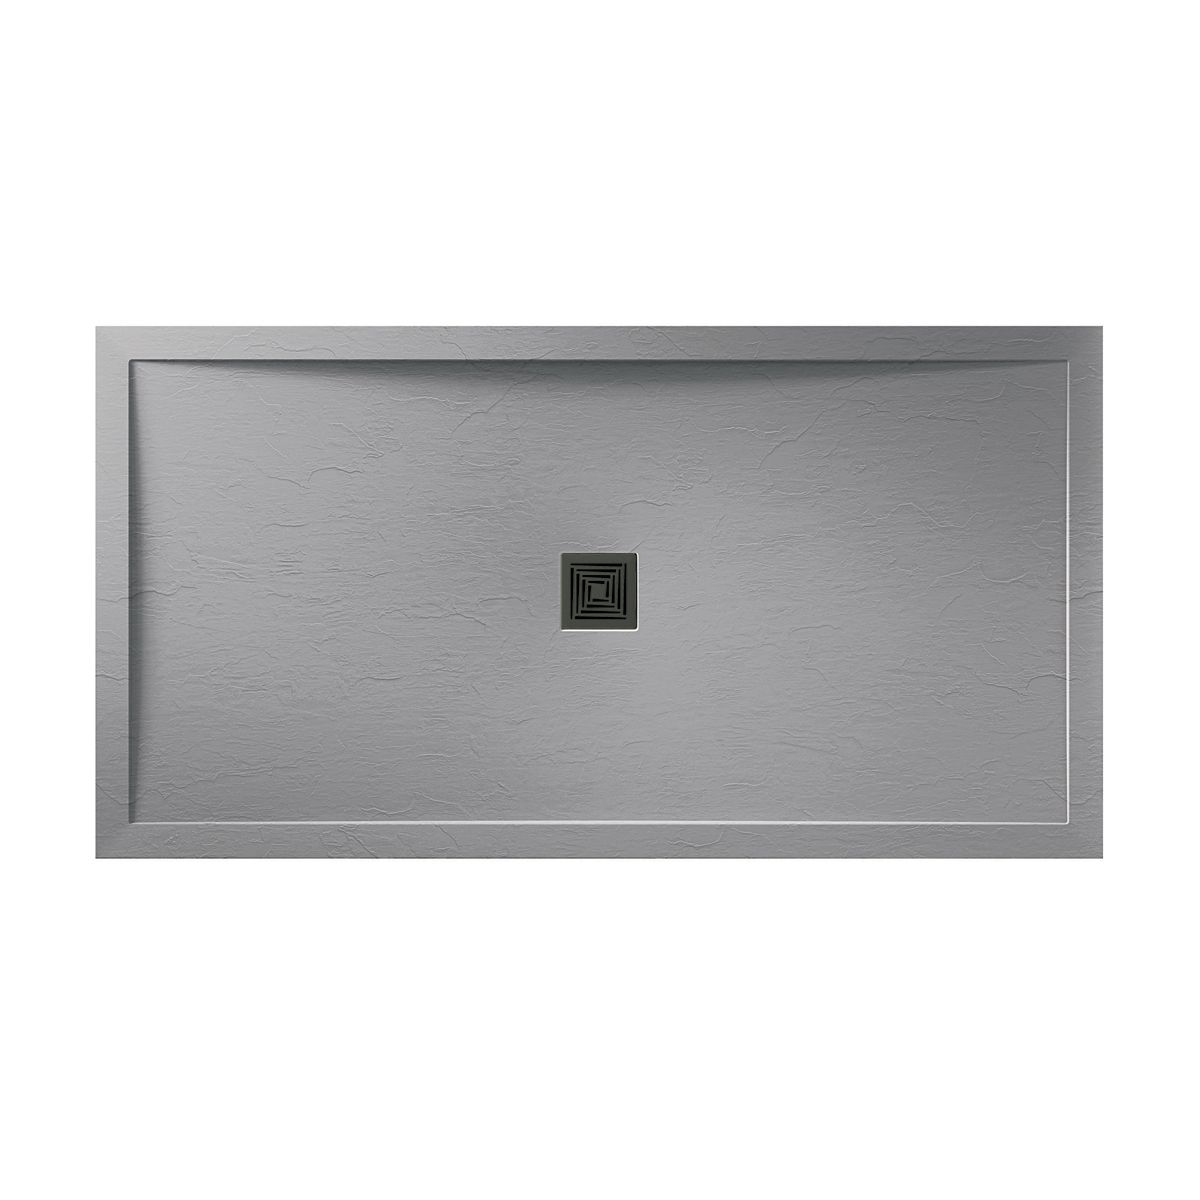 Aquadart Grey Slate Shower Tray 1600 x 700